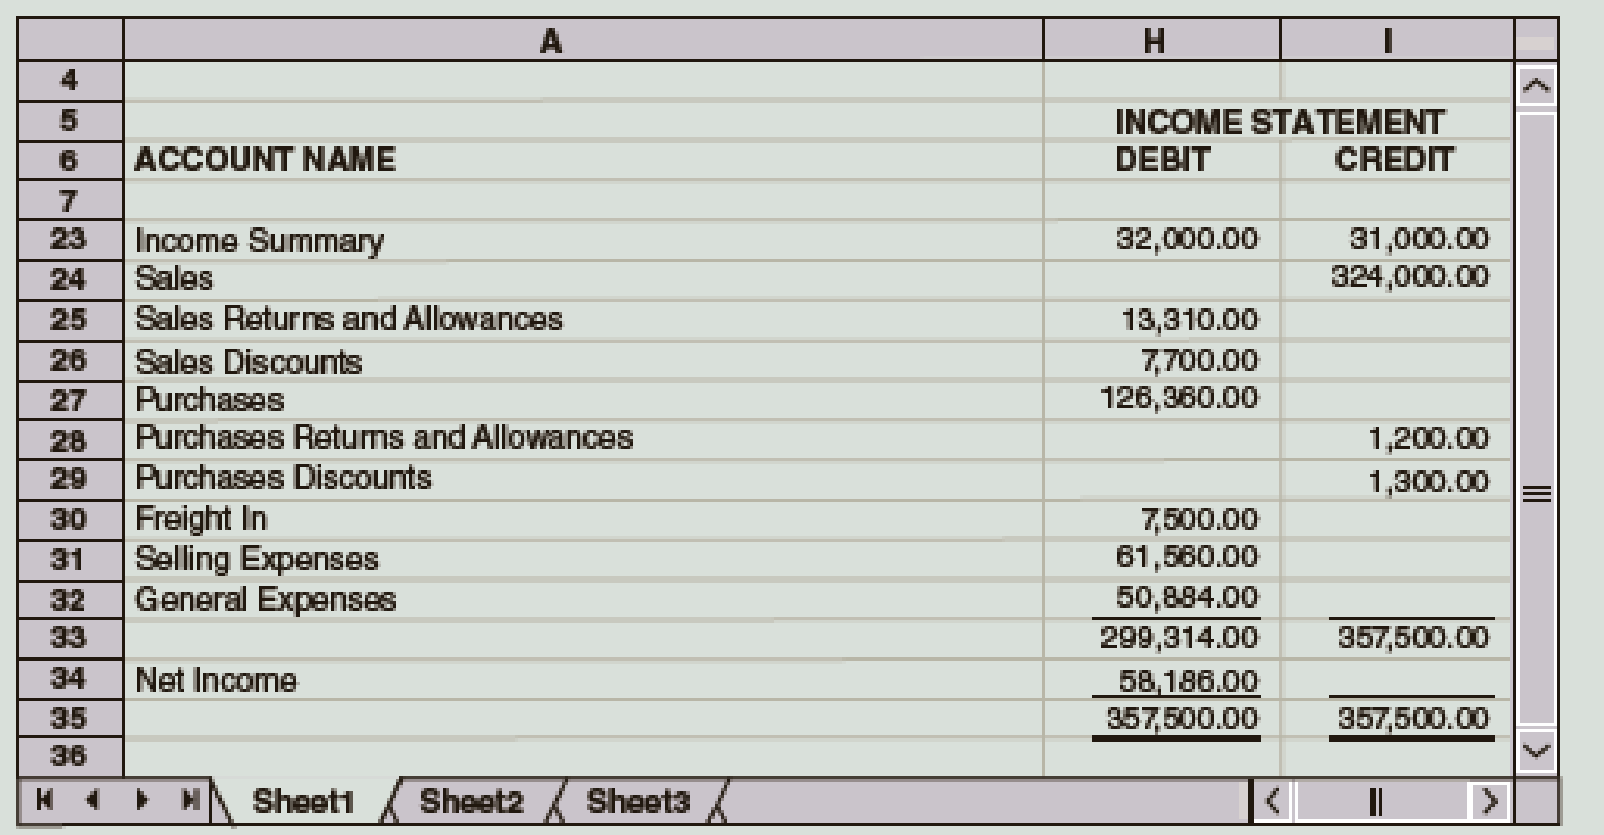 Chapter 12, Problem 4E, The Income Statement columns of the August 31 (year-end) work sheet for Ralley Company are shown